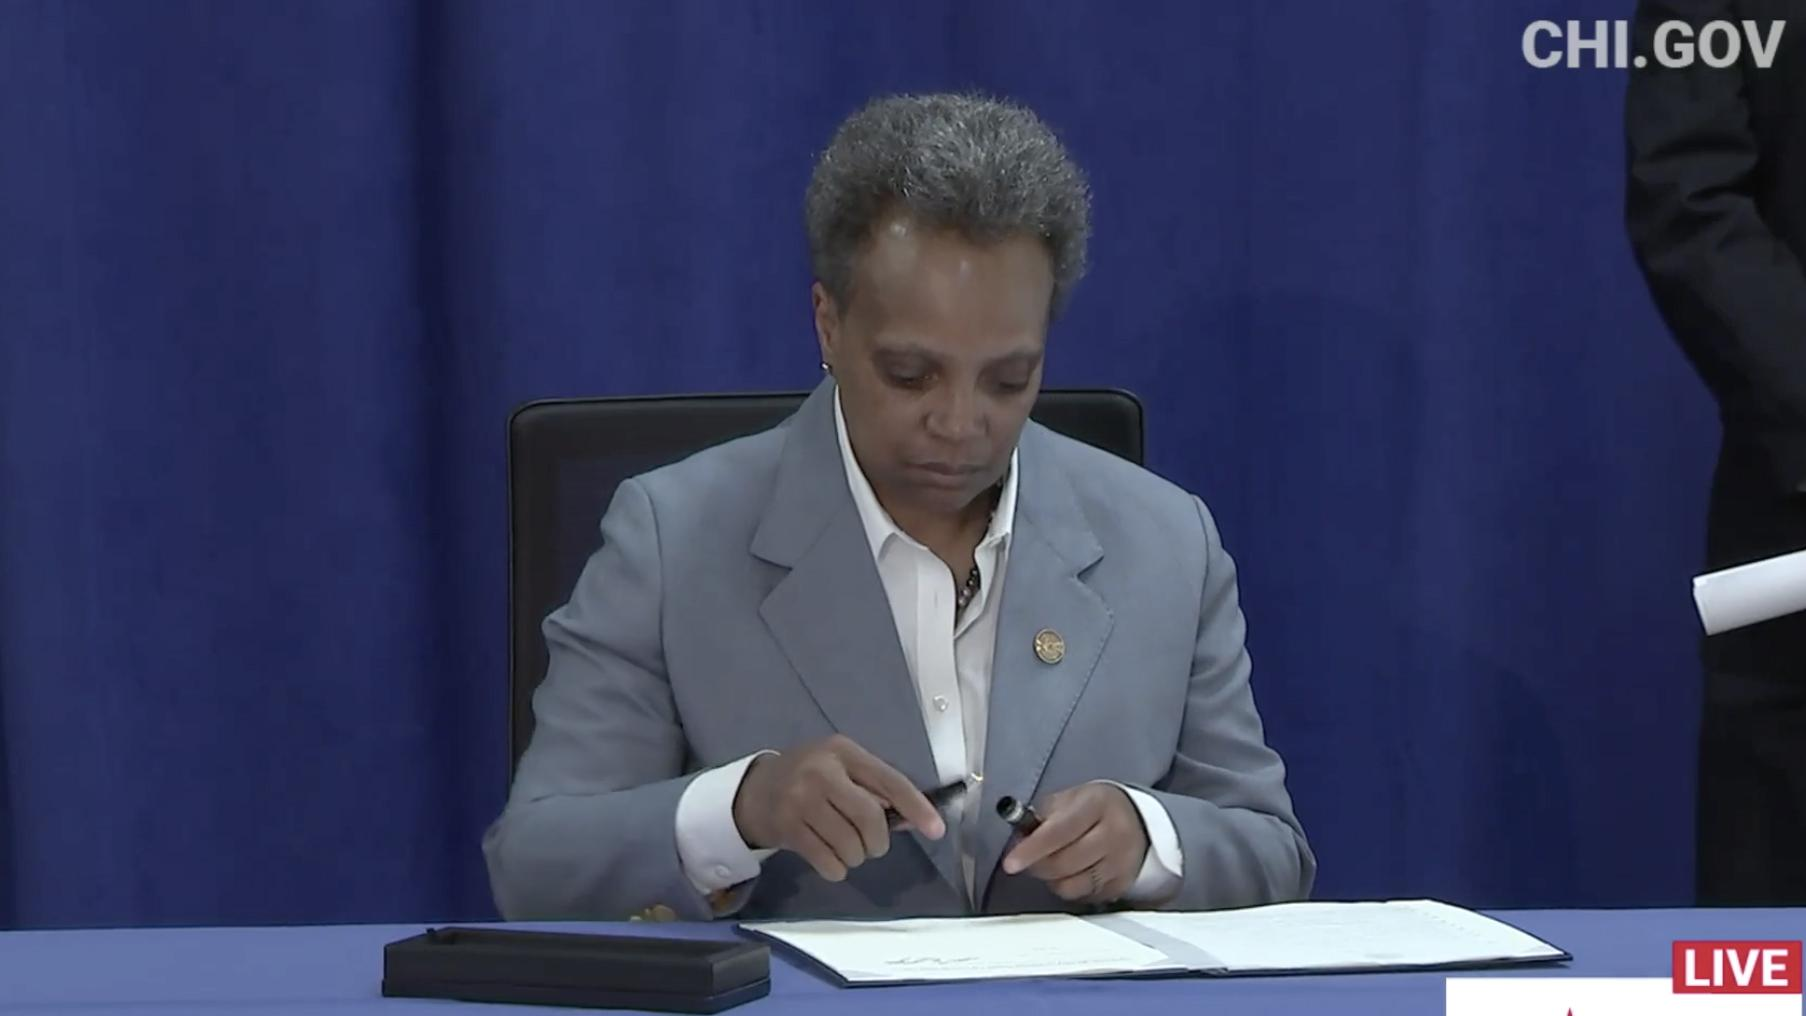 Mayor Lori Lightfoot signs an executive order ensuring all Chicago residents have equal access to COVID-19 aid programs regardless of citizenship status on Tuesday, April 7, 2020. (Chicago Mayor's Office / Facebook photo)